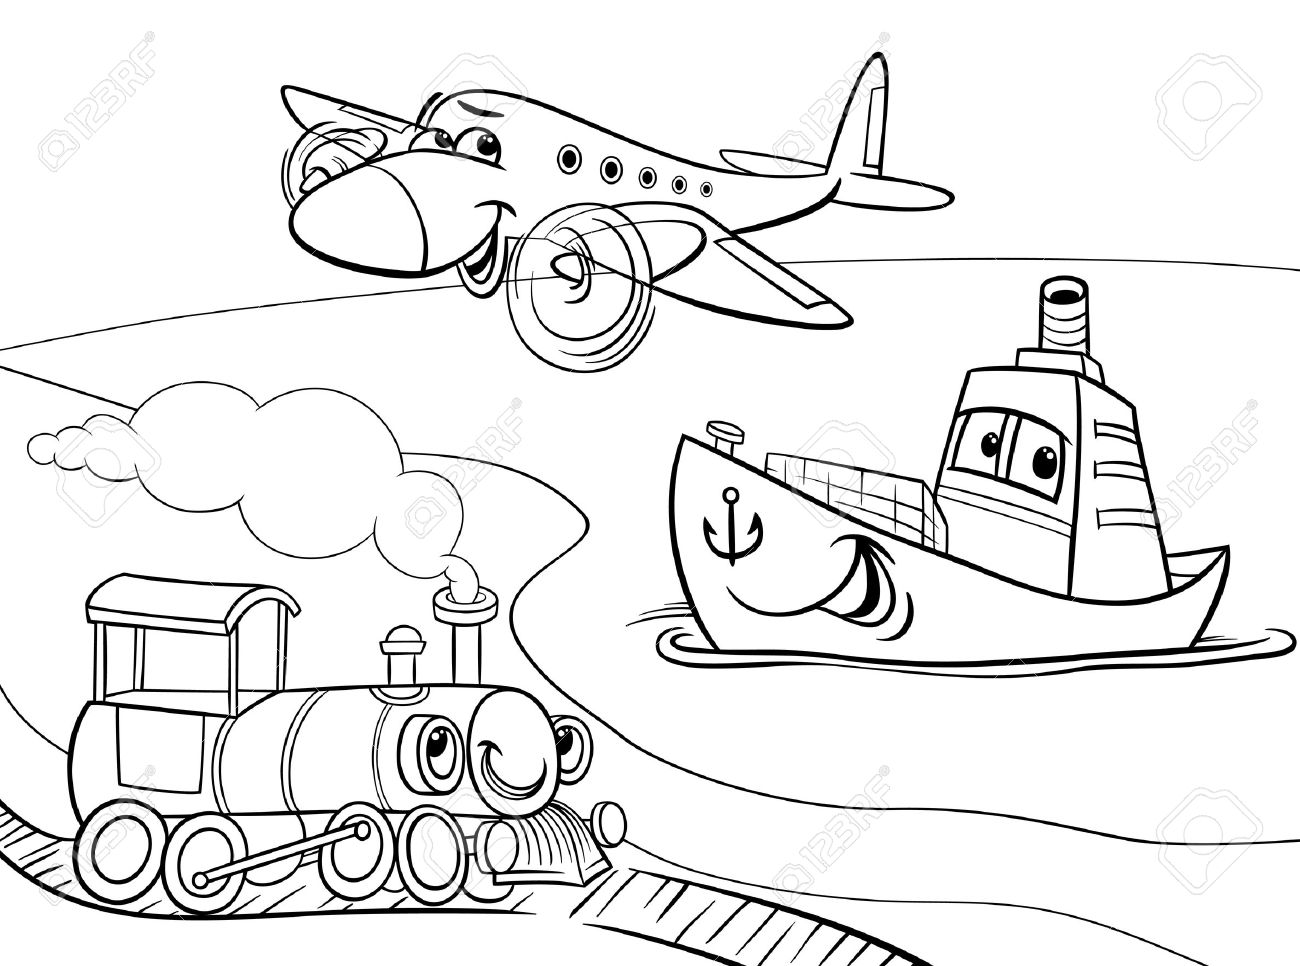 black and white cartoon illustration of funny plane and train